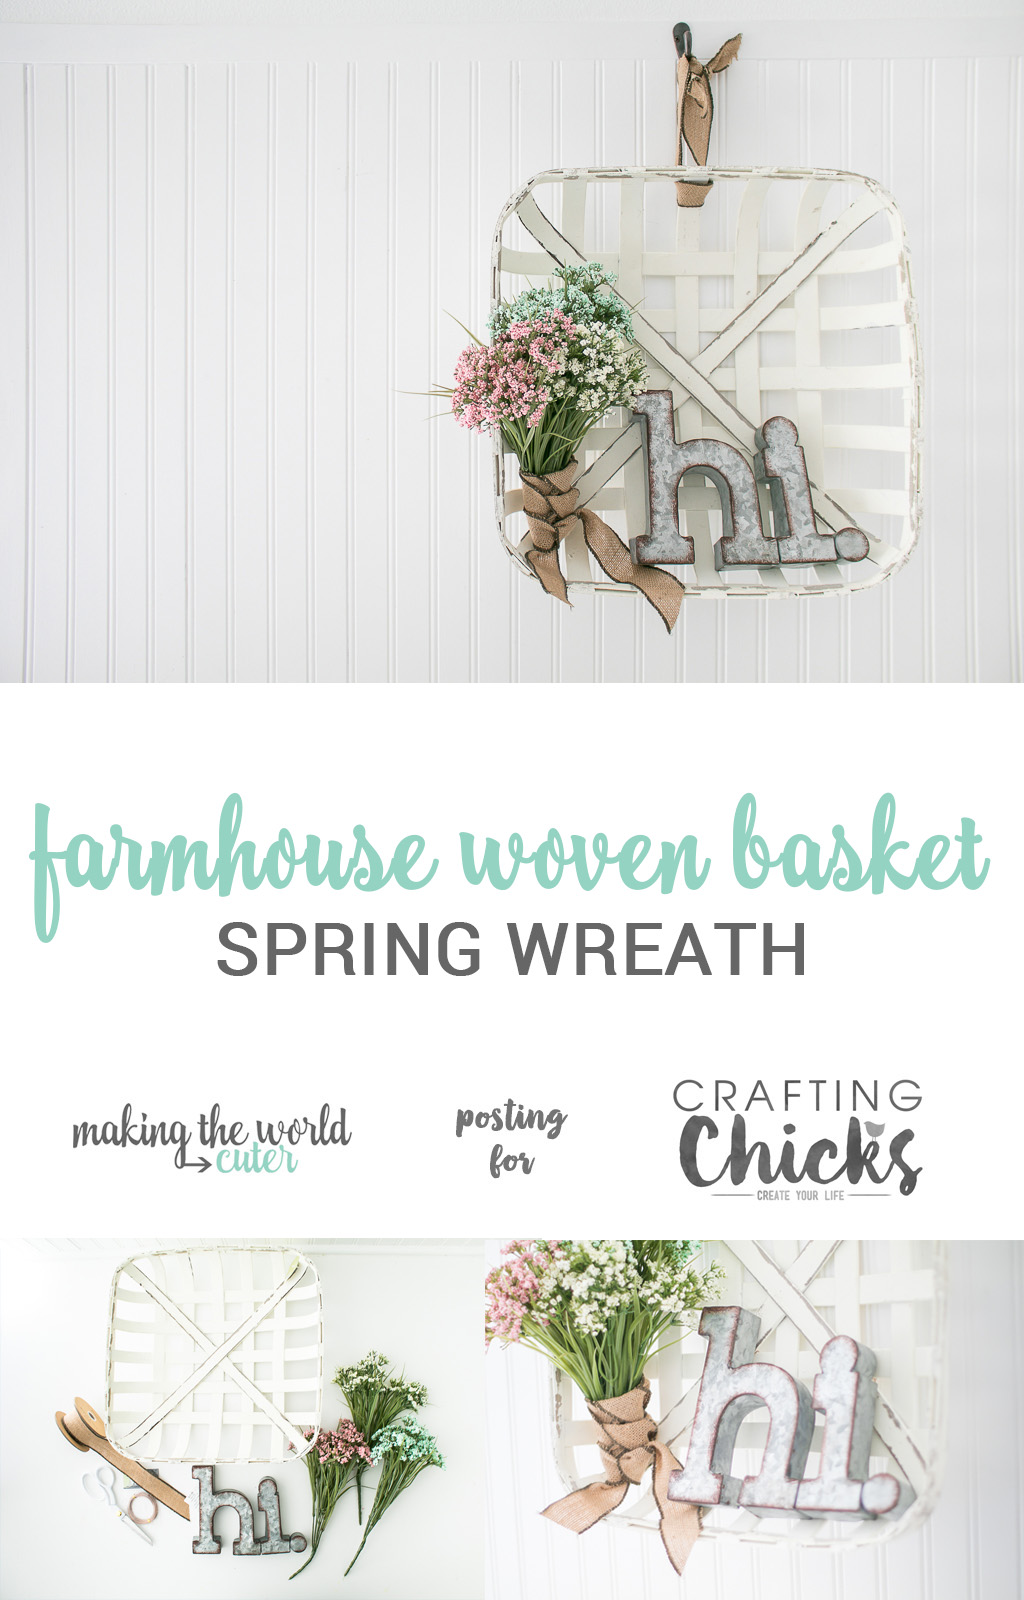 Farmhouse Woven Basket Spring Wreath